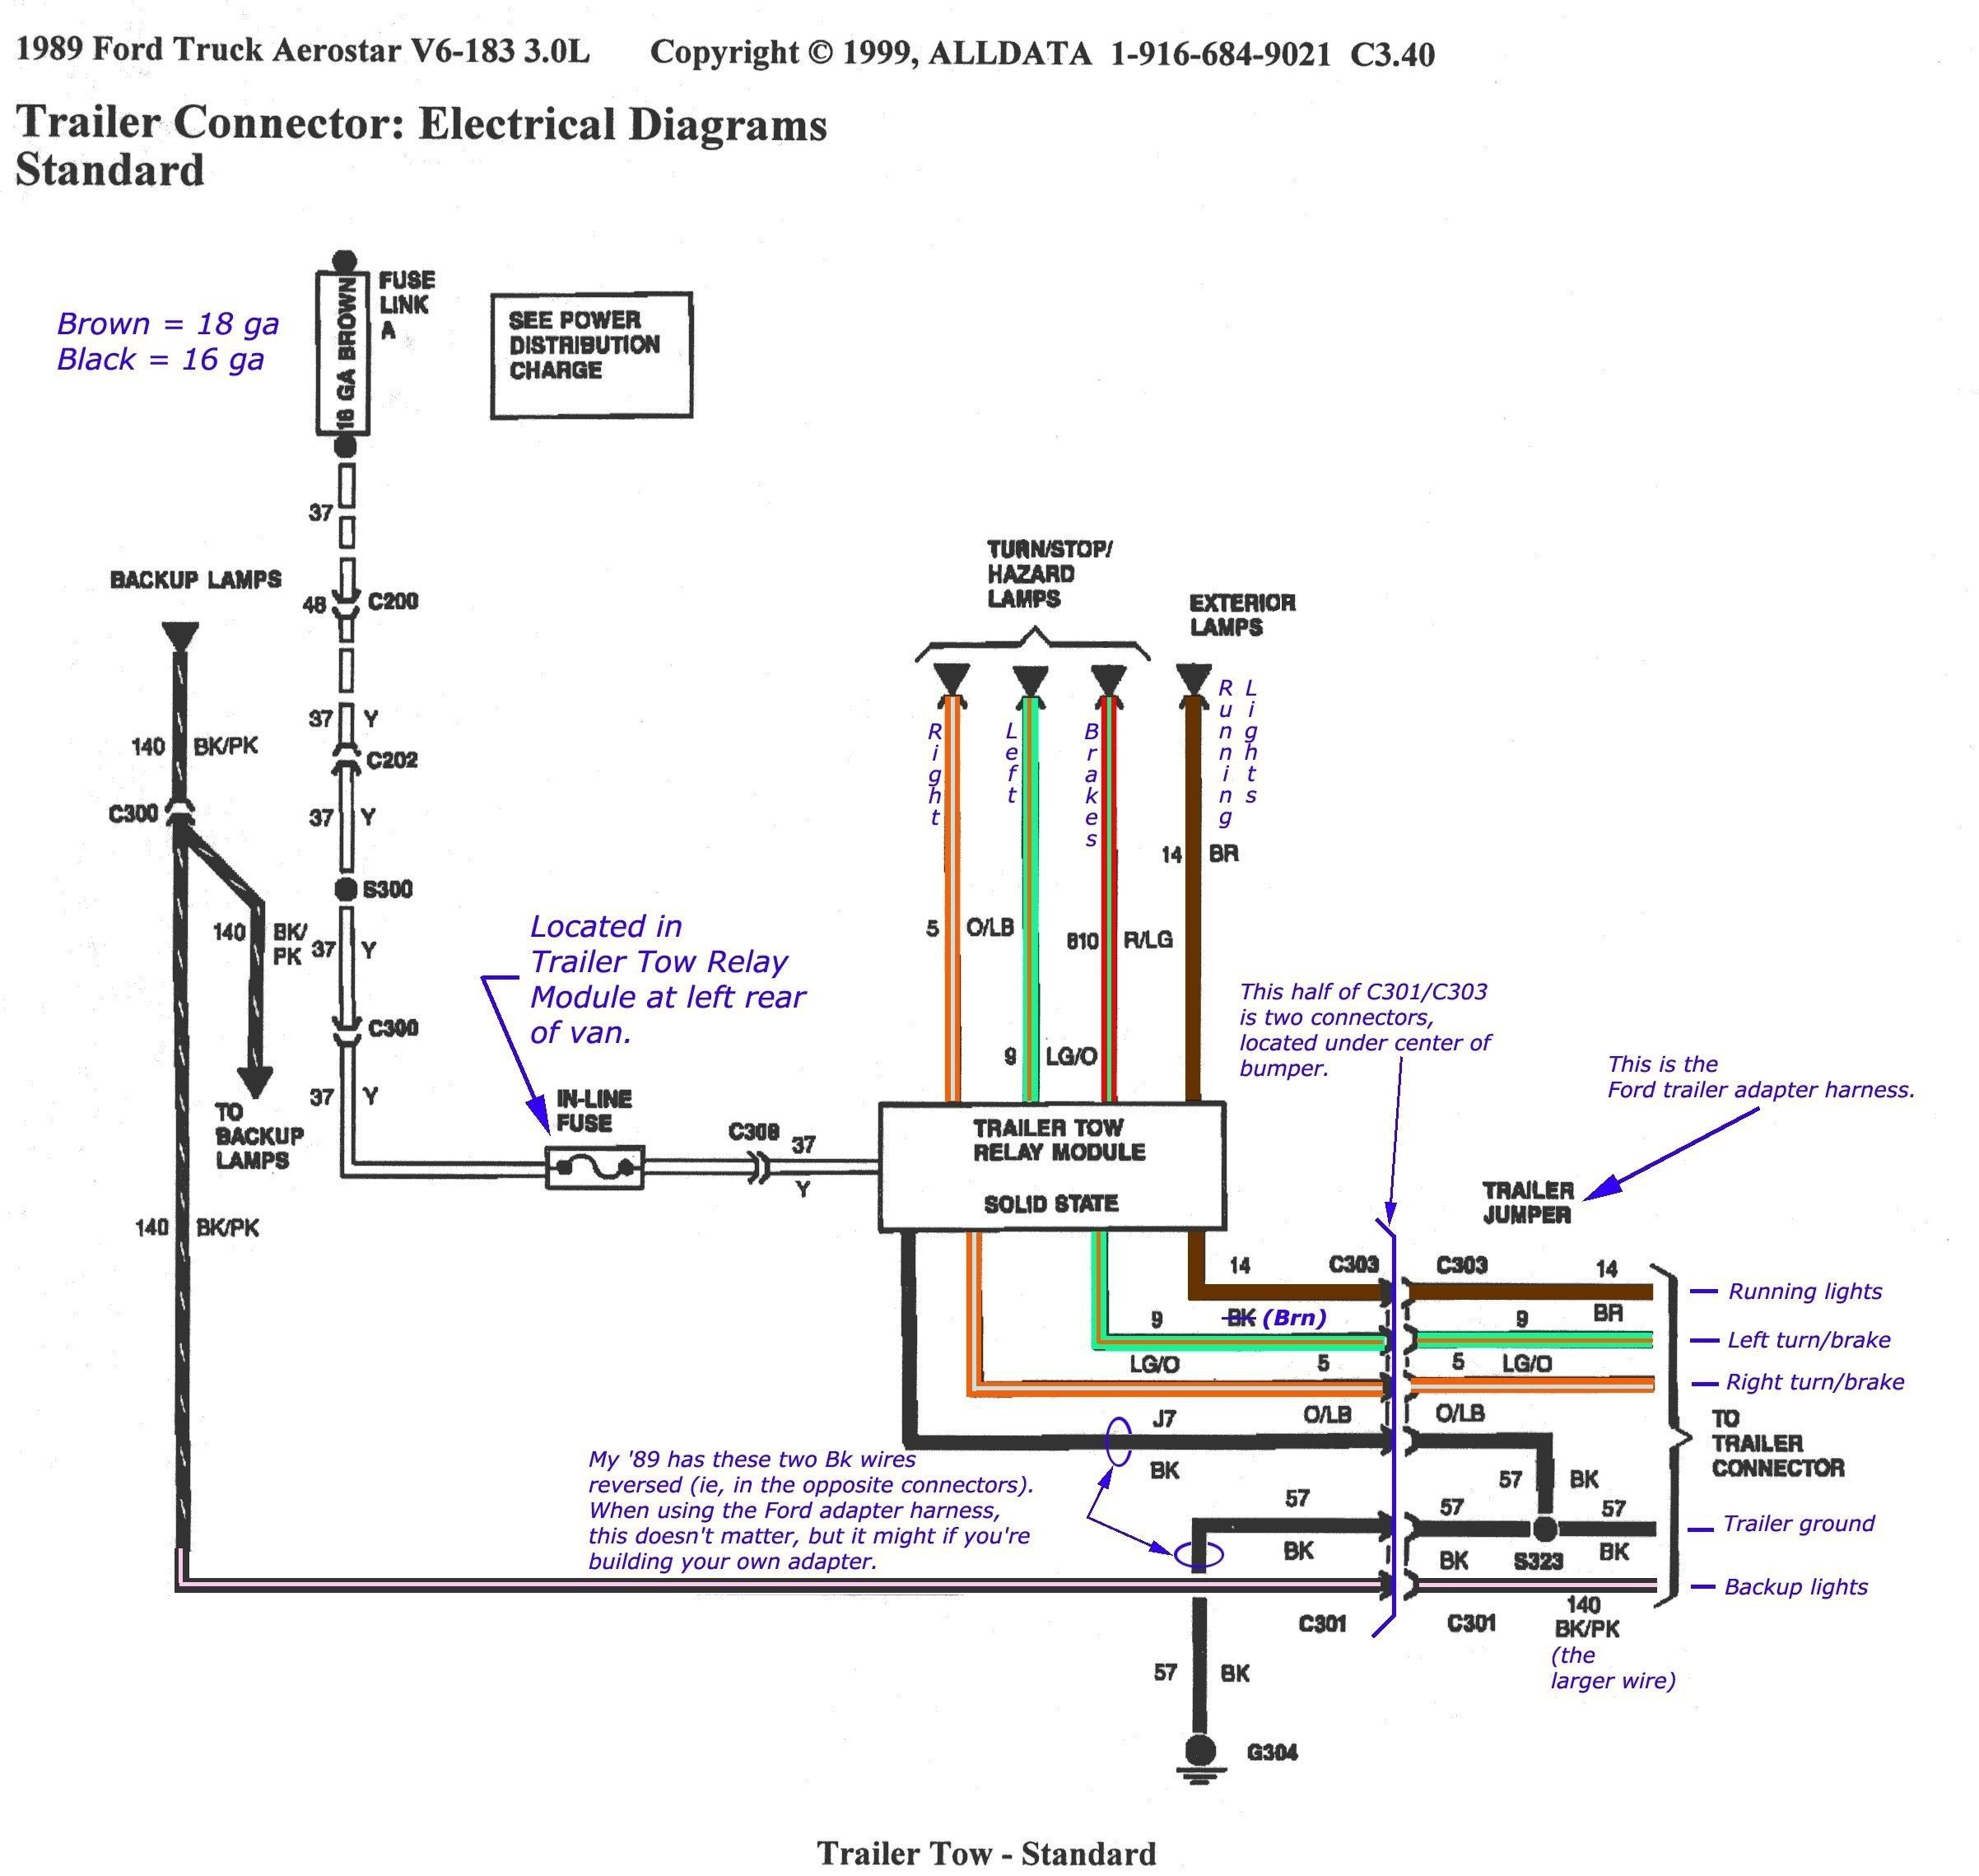 Pleasing Free Vehicle Wiring Diagrams Basic Electronics Wiring Diagram Wiring Cloud Inamadienstapotheekhoekschewaardnl